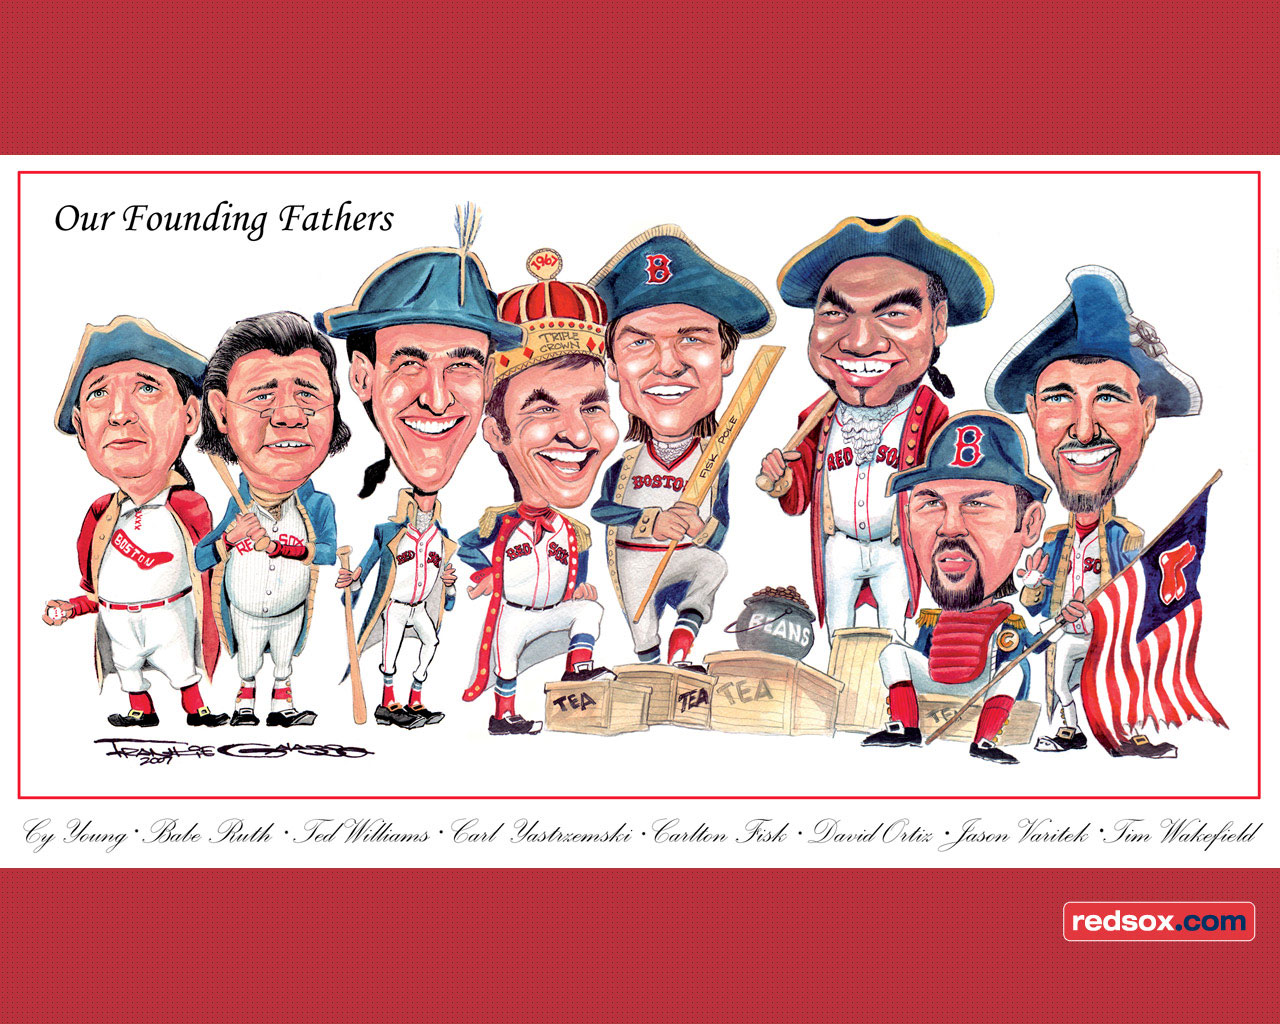 Red Sox Founding Fathers Wallpaper Desivalleycom 1280x1024